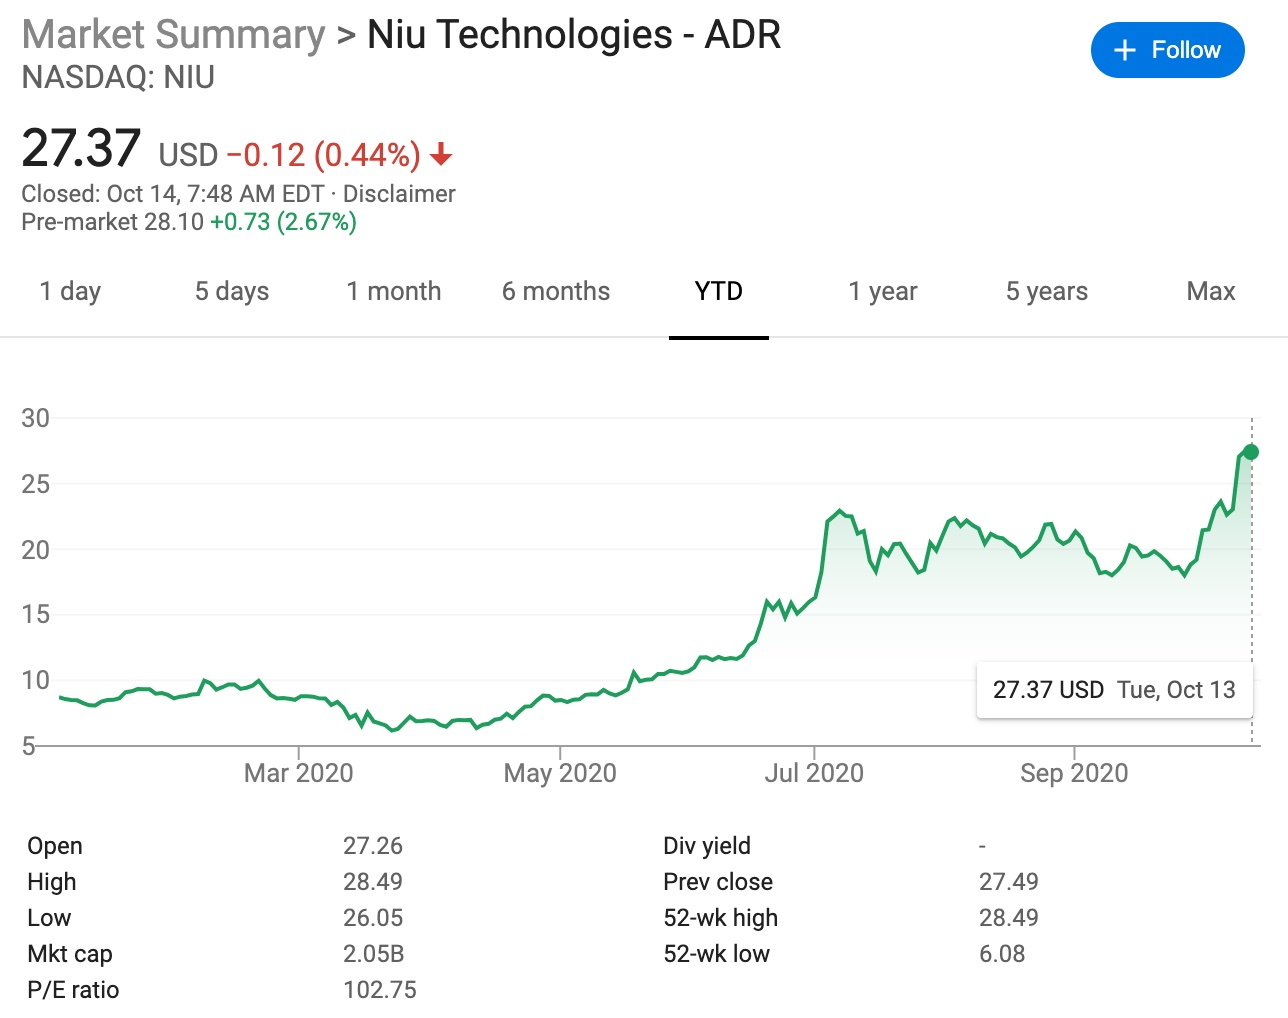 CICC initiates coverage of Niu Technologies with Outperform rating and $31 price target-CnTechPost